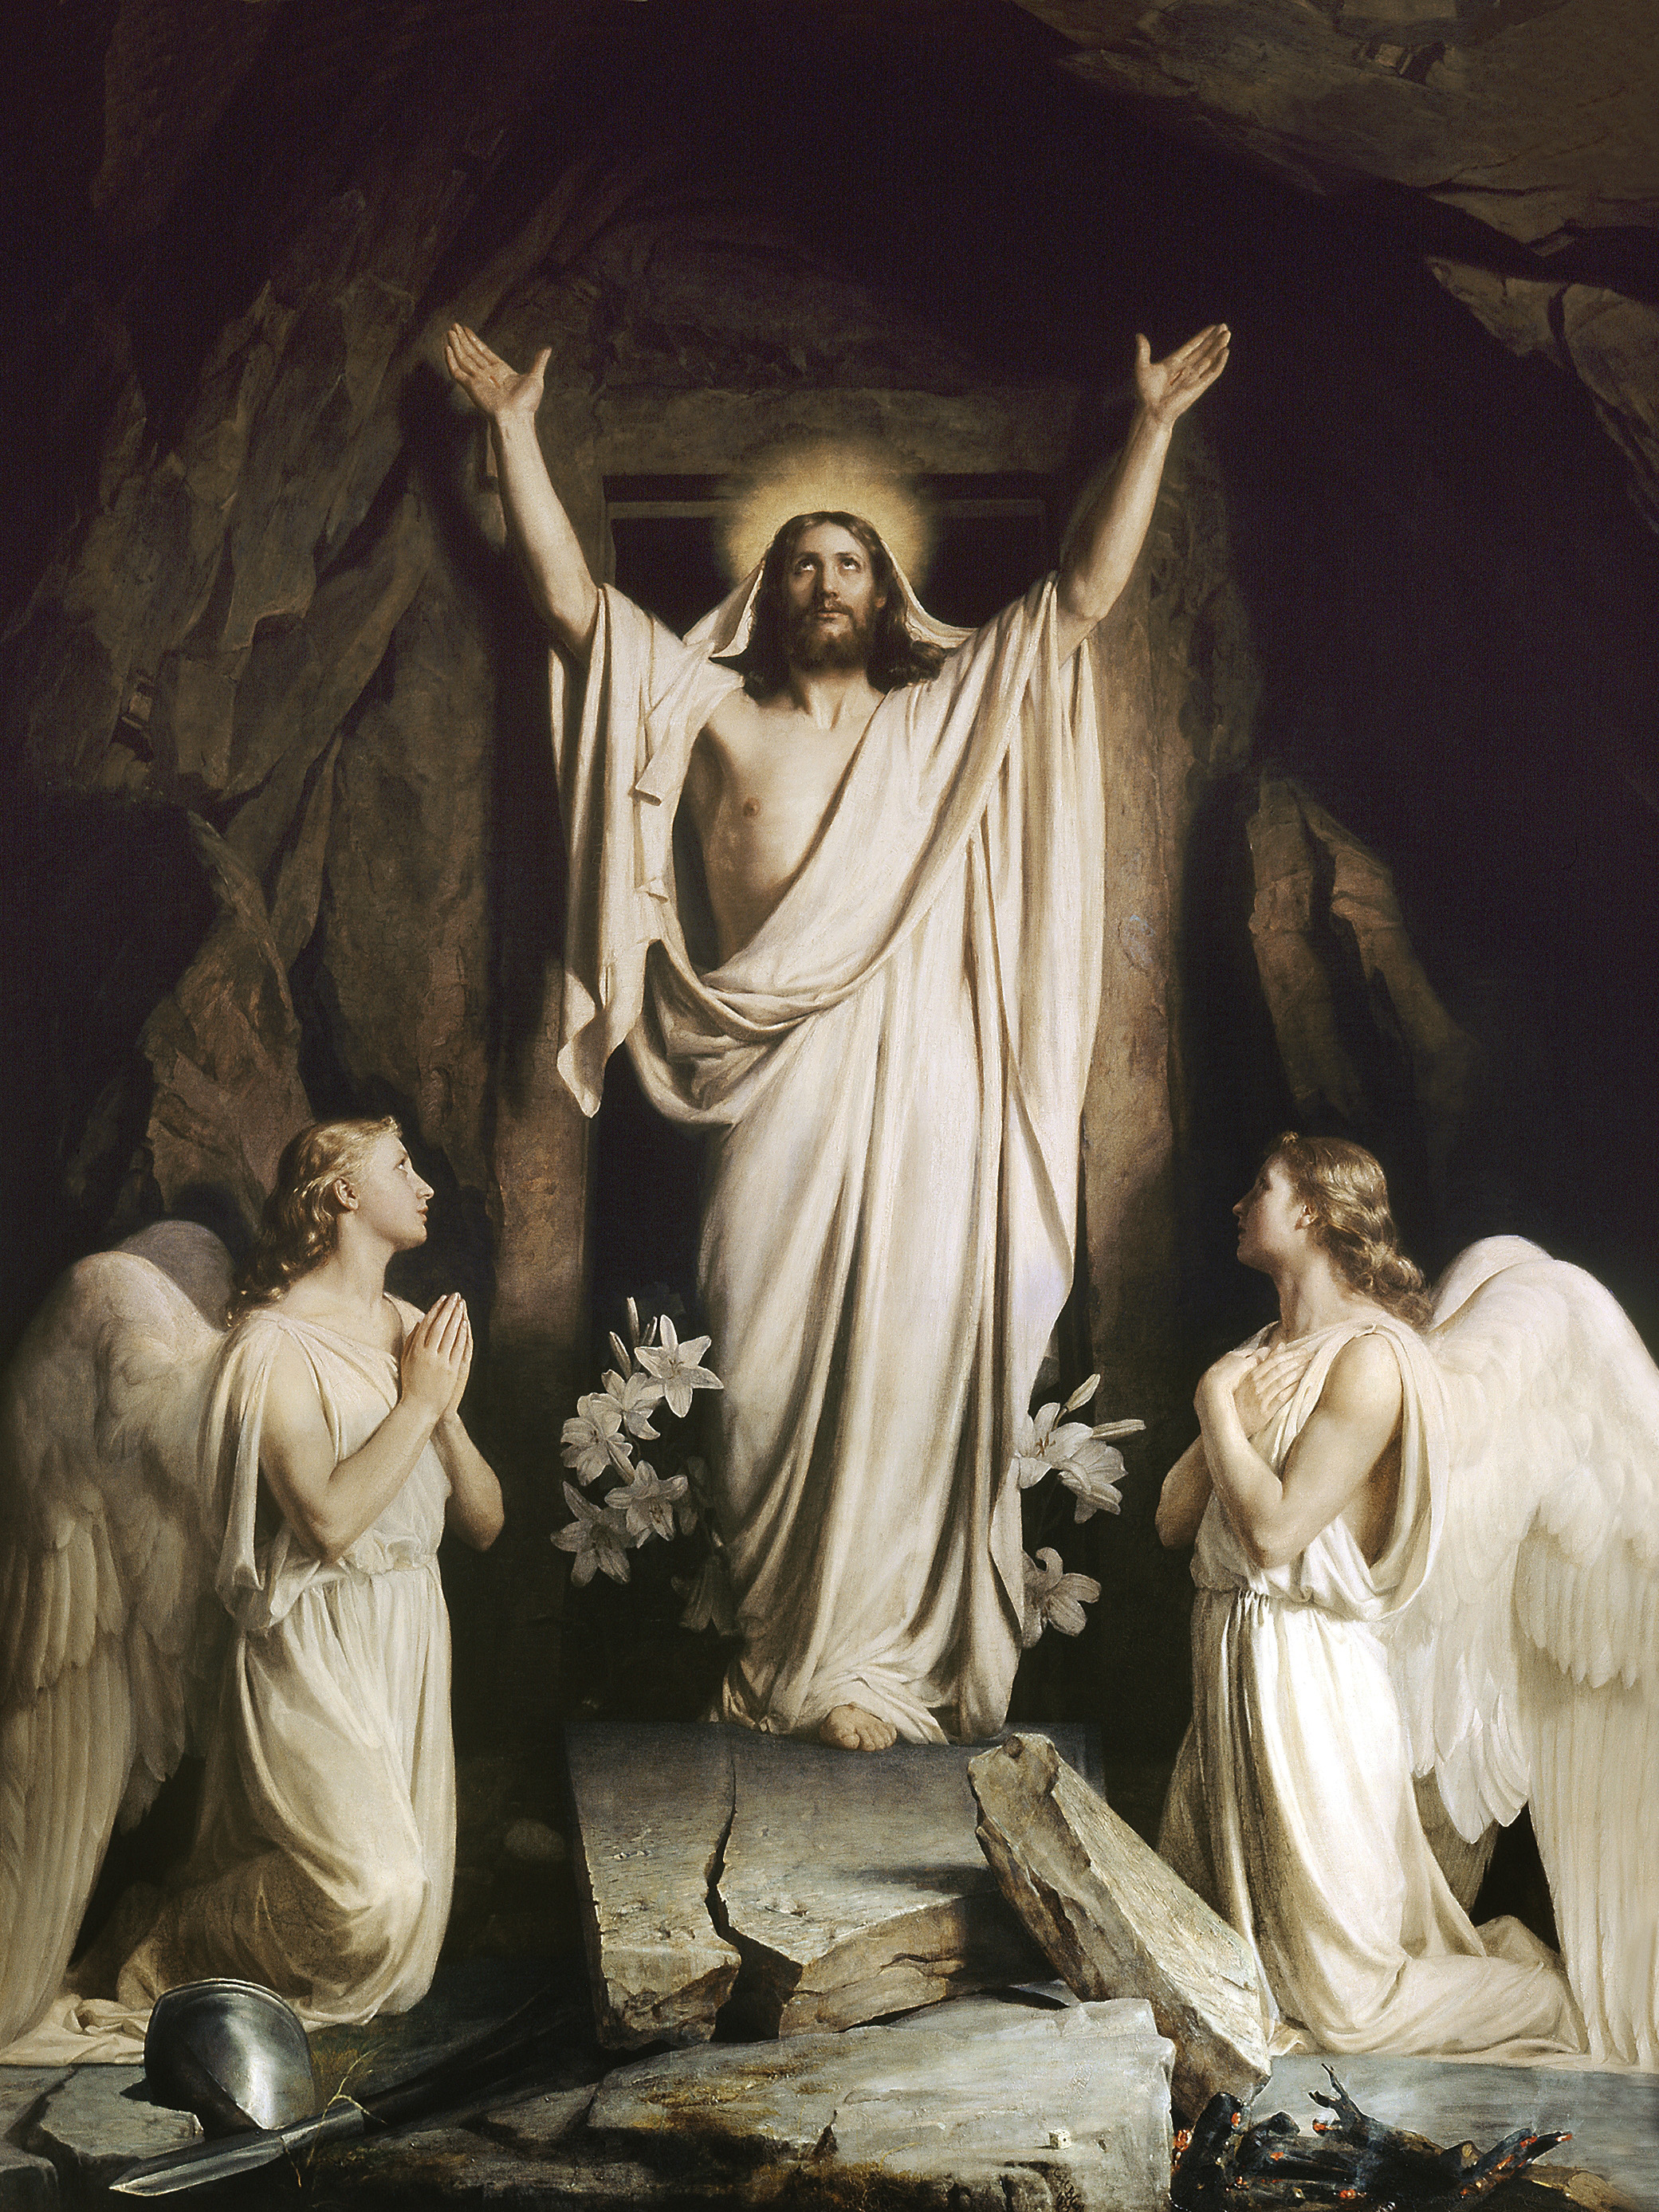 Carl Heinrich Bloch, The Resurrection, 1873. Museum of National History on Frederiksborg Castle